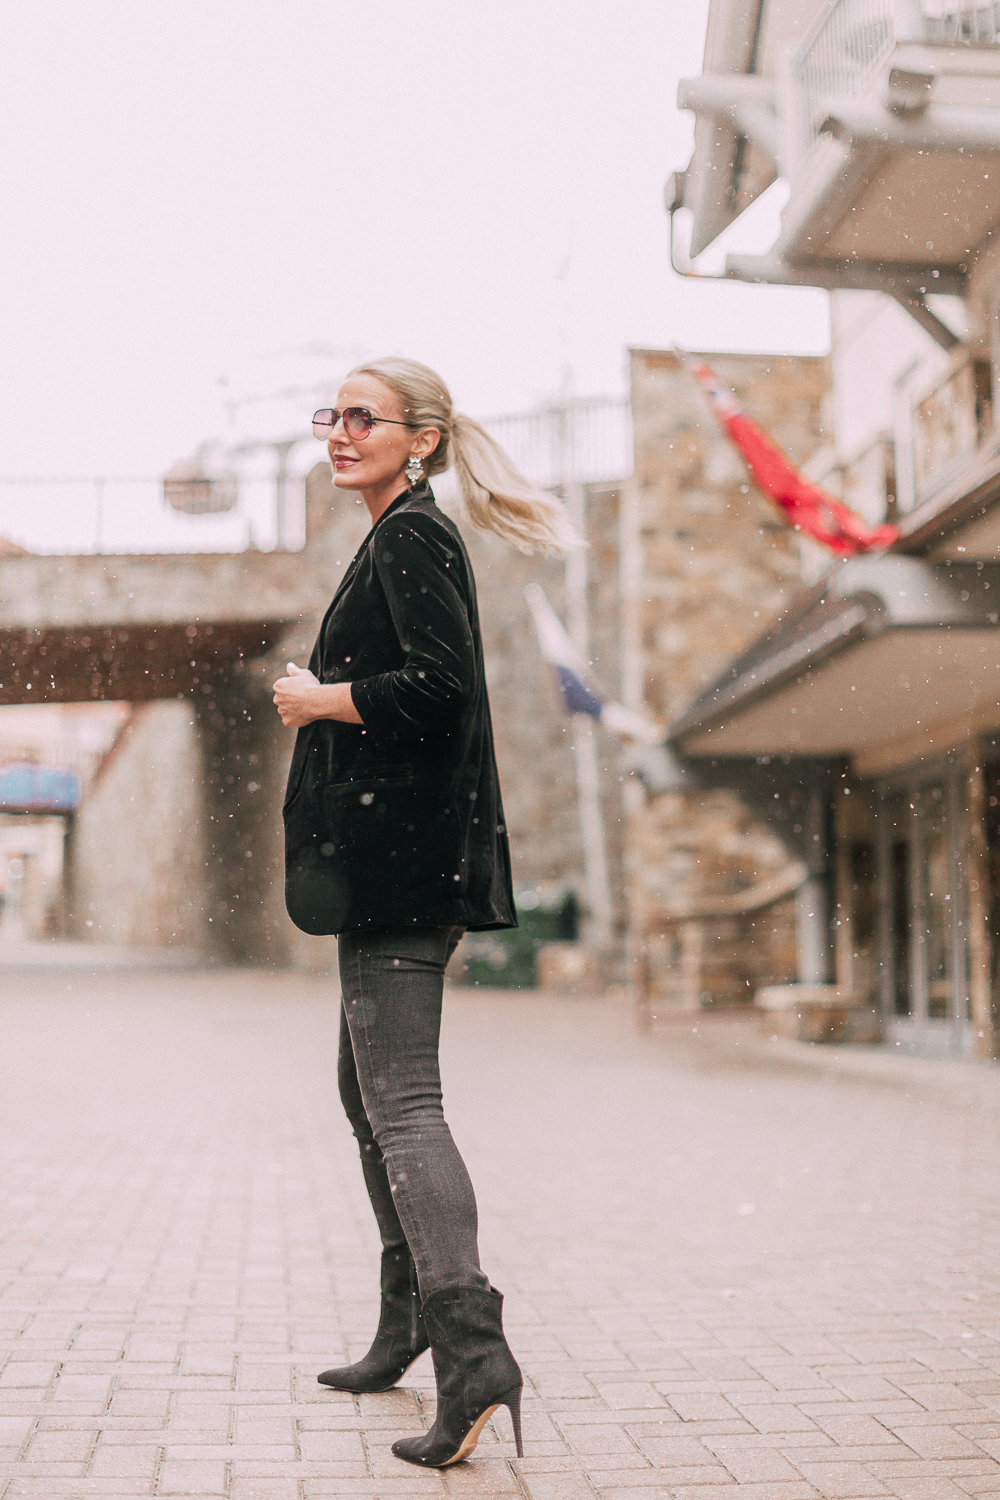 Unexpected holiday party outfits featuring gray jeans, sequin camisole, black velvet boyfriend blazer with ruched 3/4 sleeves on blonde fashion blogger in Telluride, Colorado wearing black western style ankle booties